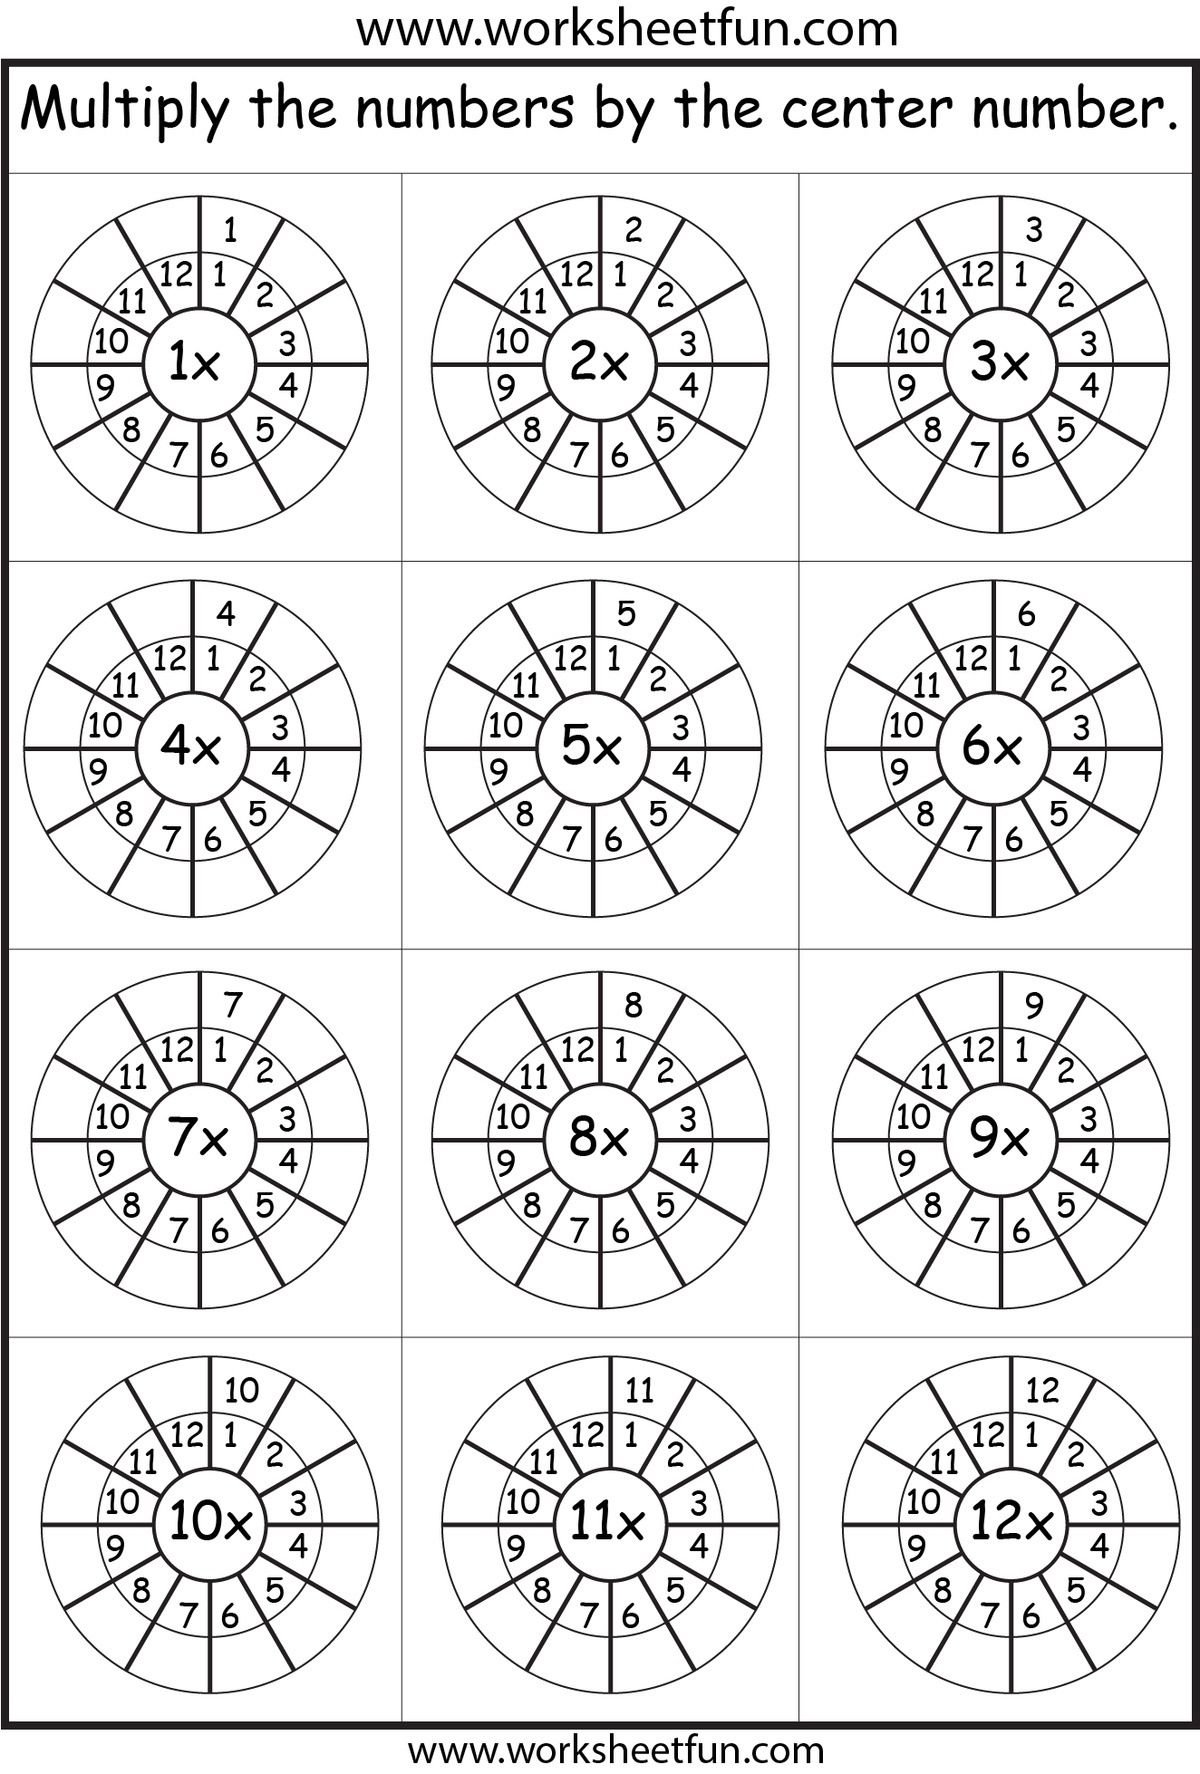 Times table practice | Math | Pinterest | Multiplikation ...